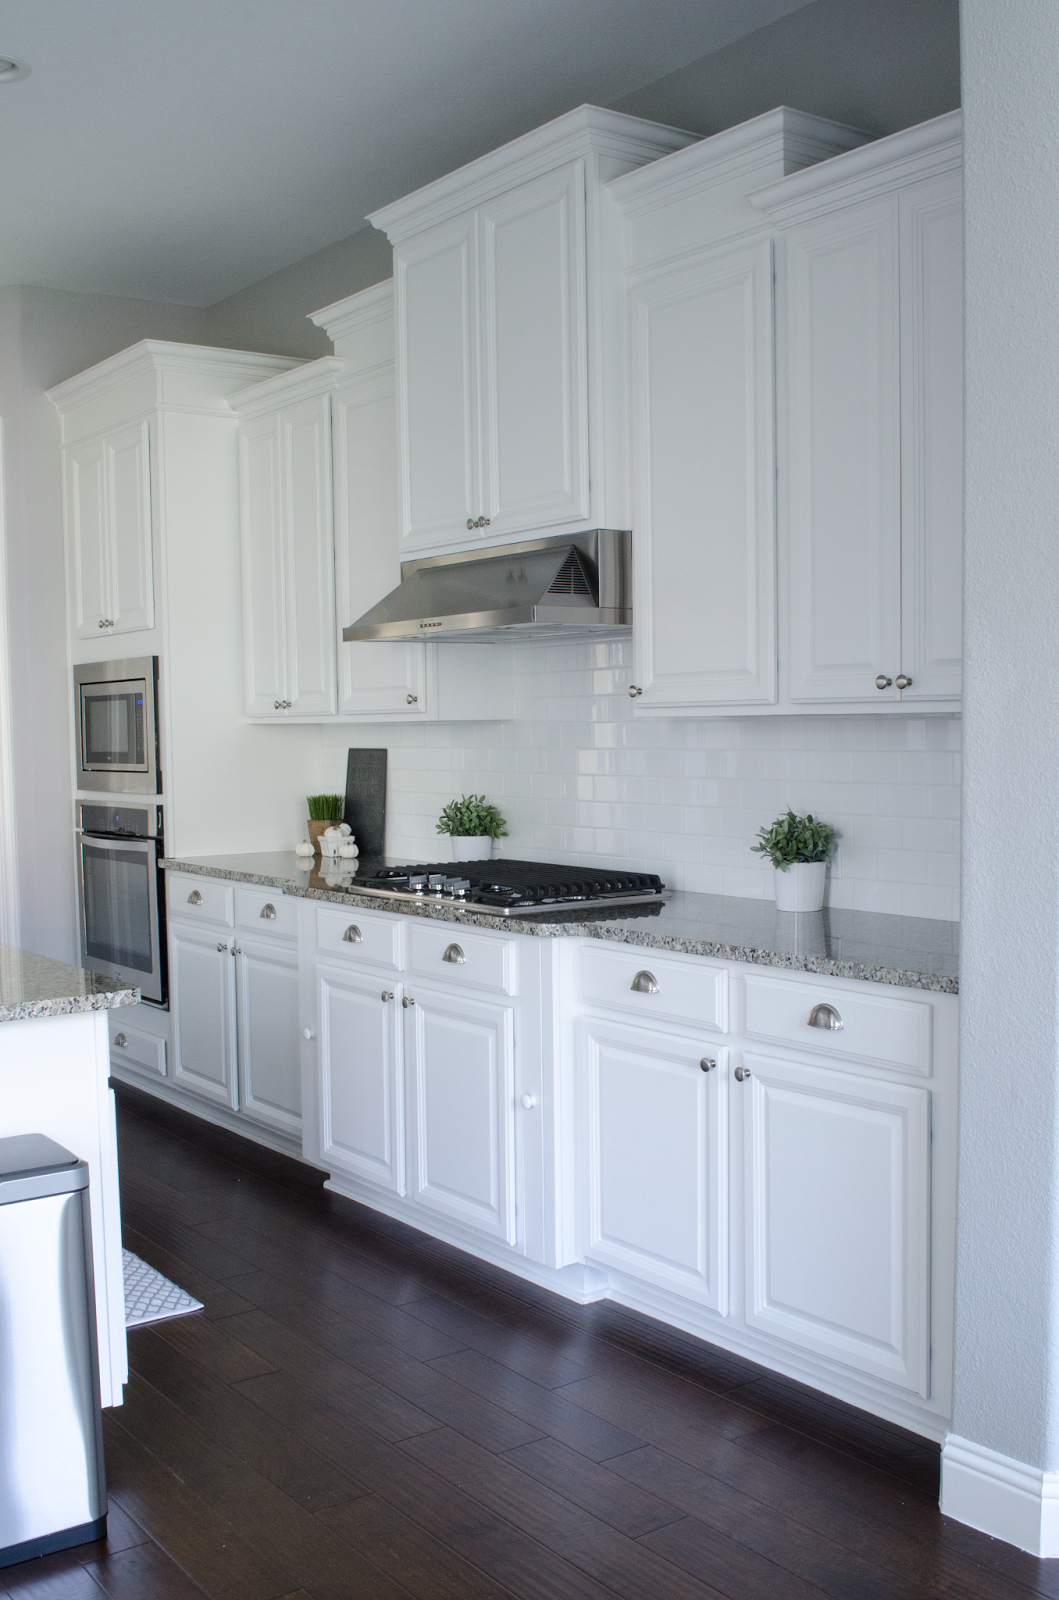 White kitchen cabinets kitchen love pinterest for Grey kitchen wall units